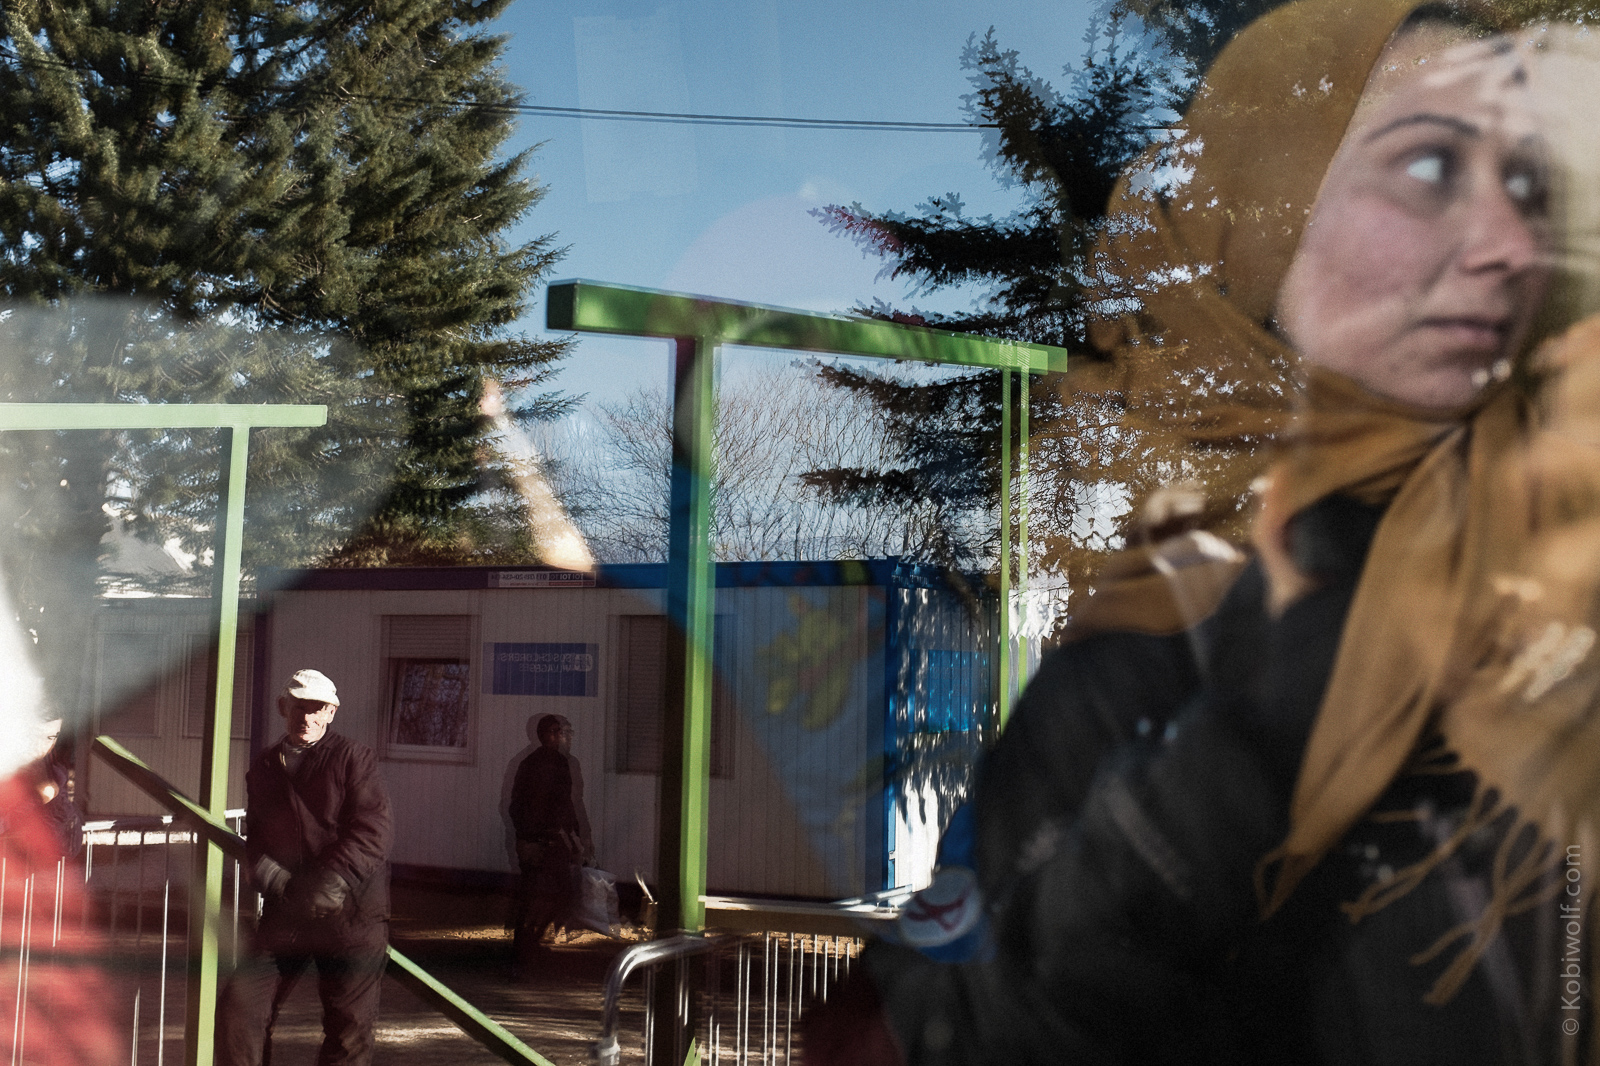 A reflection Syrian refugee woman outside the Medical centre in presevo, Refugees waiting for the registration in Presevo camp.